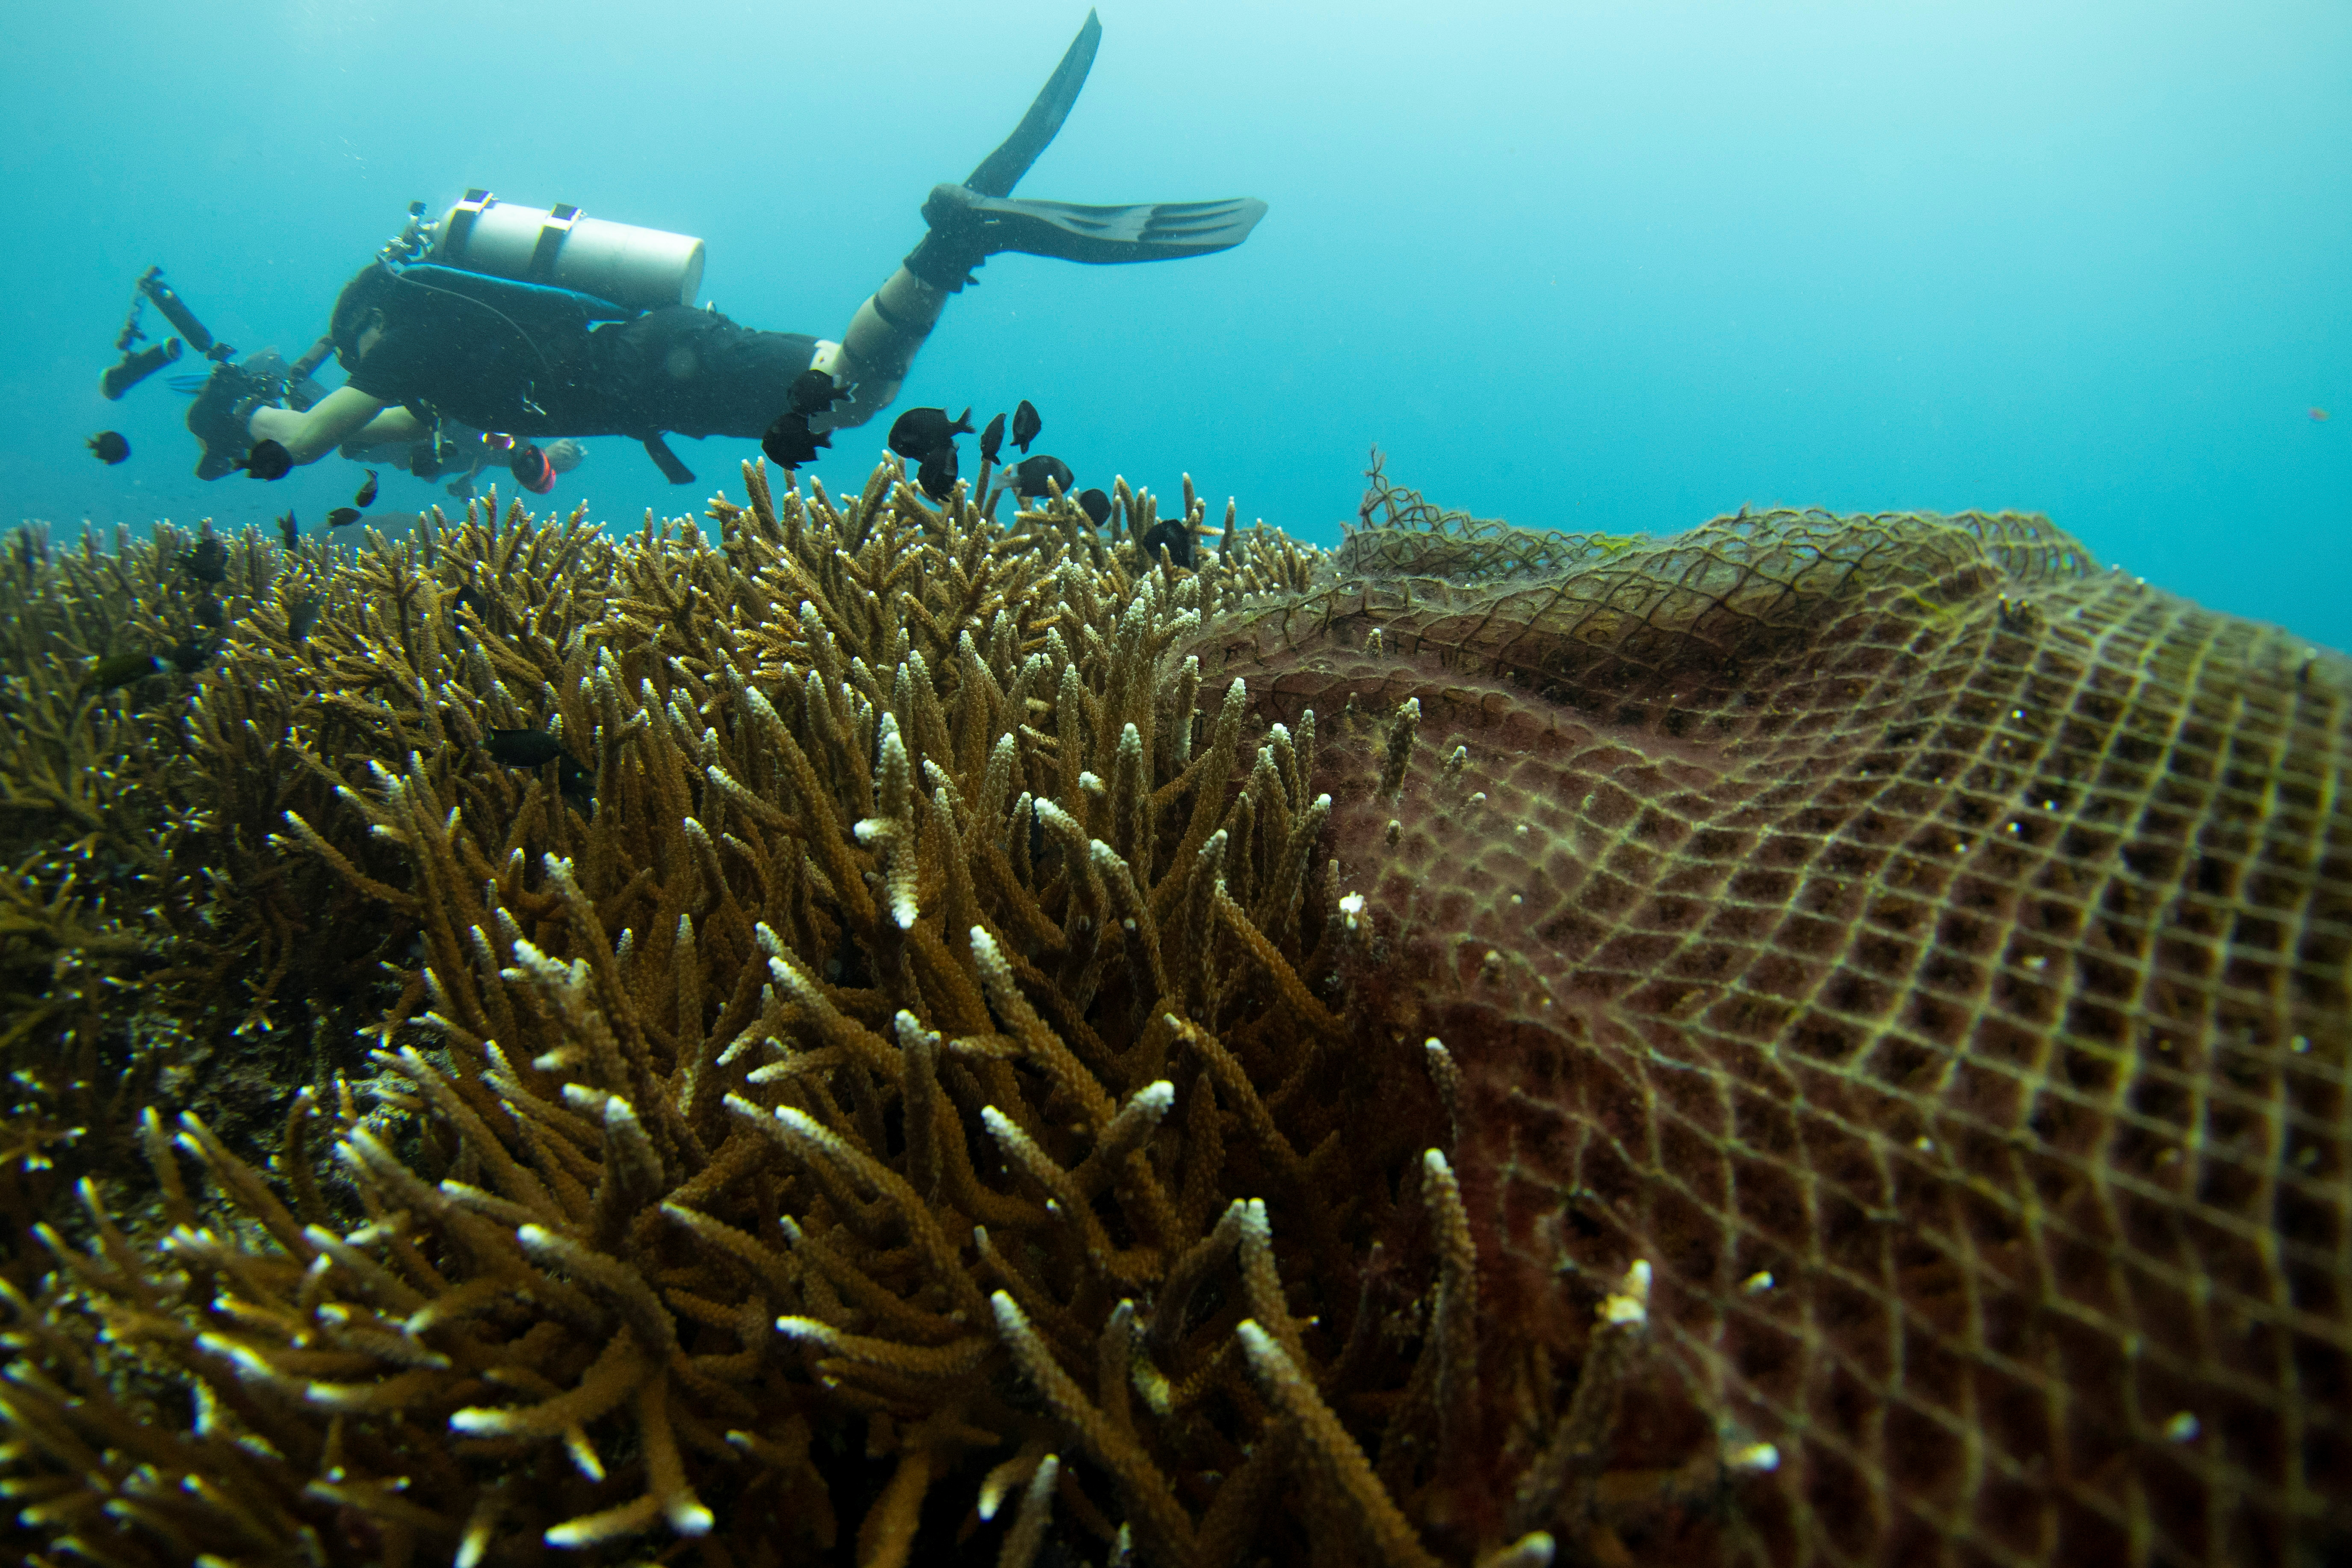 A diver swims past abandoned fishing nets covering a coral reef in a protected area of Ko Losin, where a group of volunteer divers and the Coastal Resources Research Center, helped by the Royal Thai Navy, removed 2,750 sq m of them, Ko Losin, Thailand June 19, 2021. Picture taken June 19, 2021. REUTERS/Jorge Silva